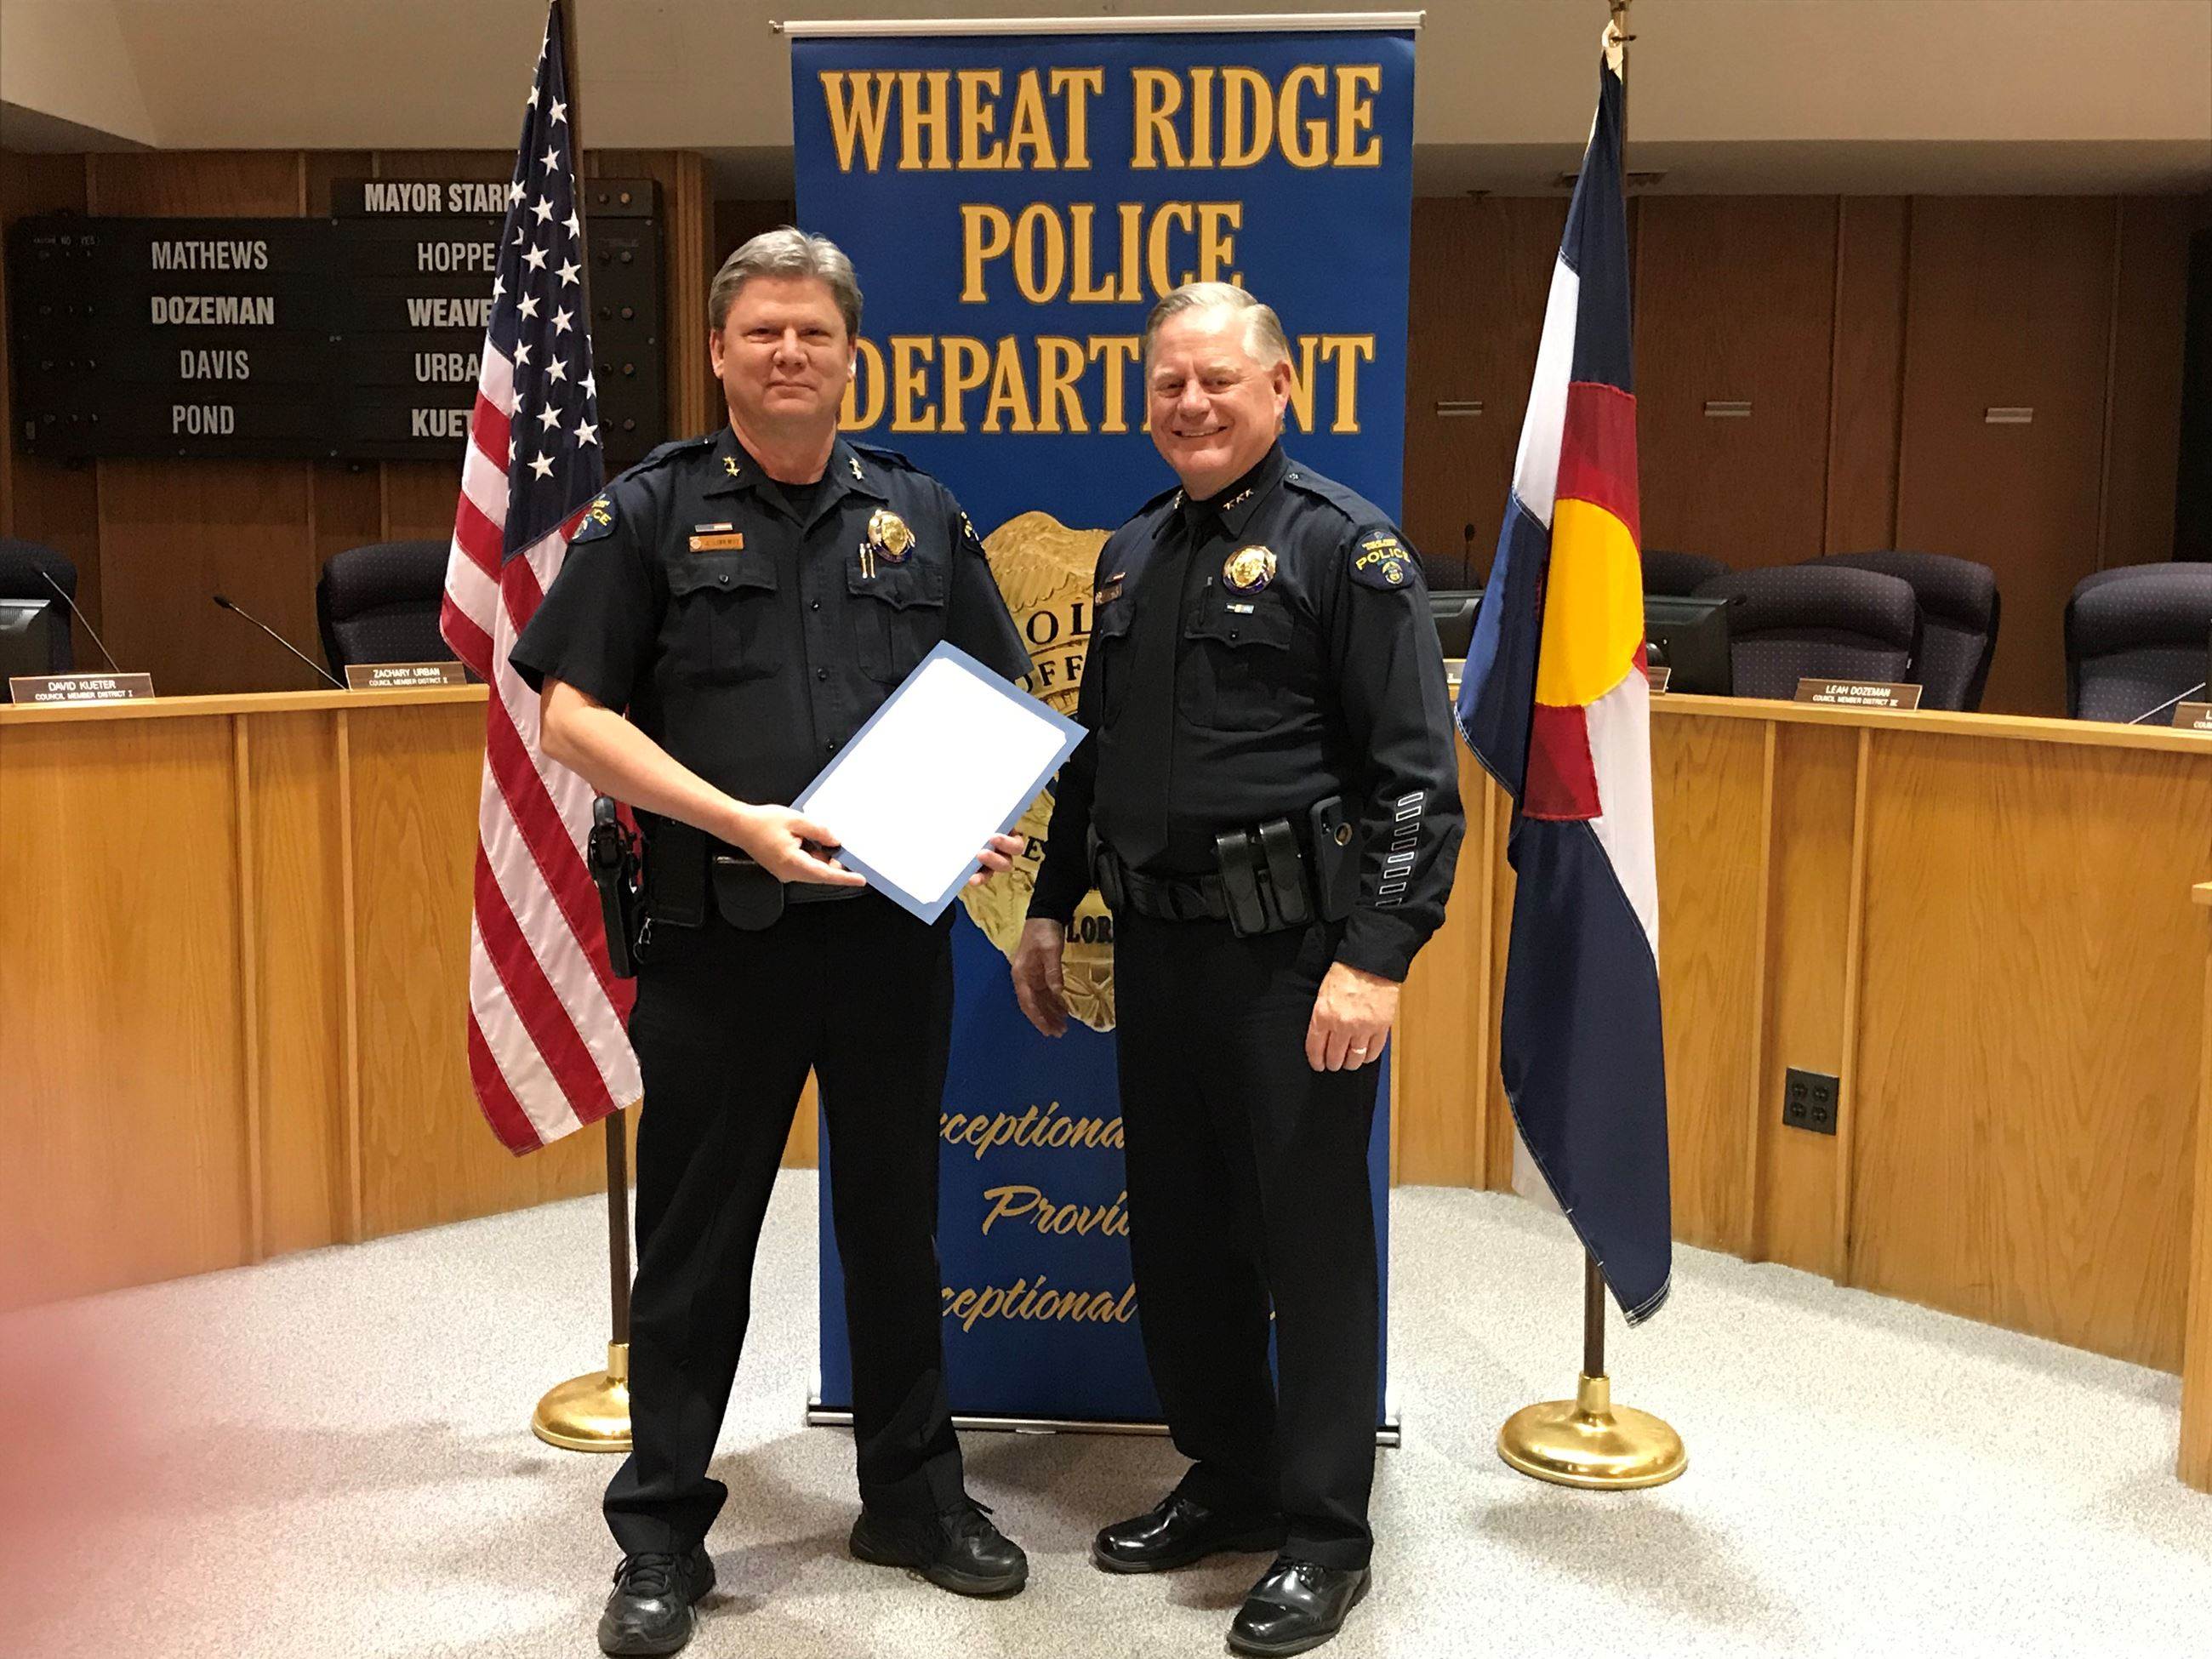 Chief presents award to Division Chief Lorentz